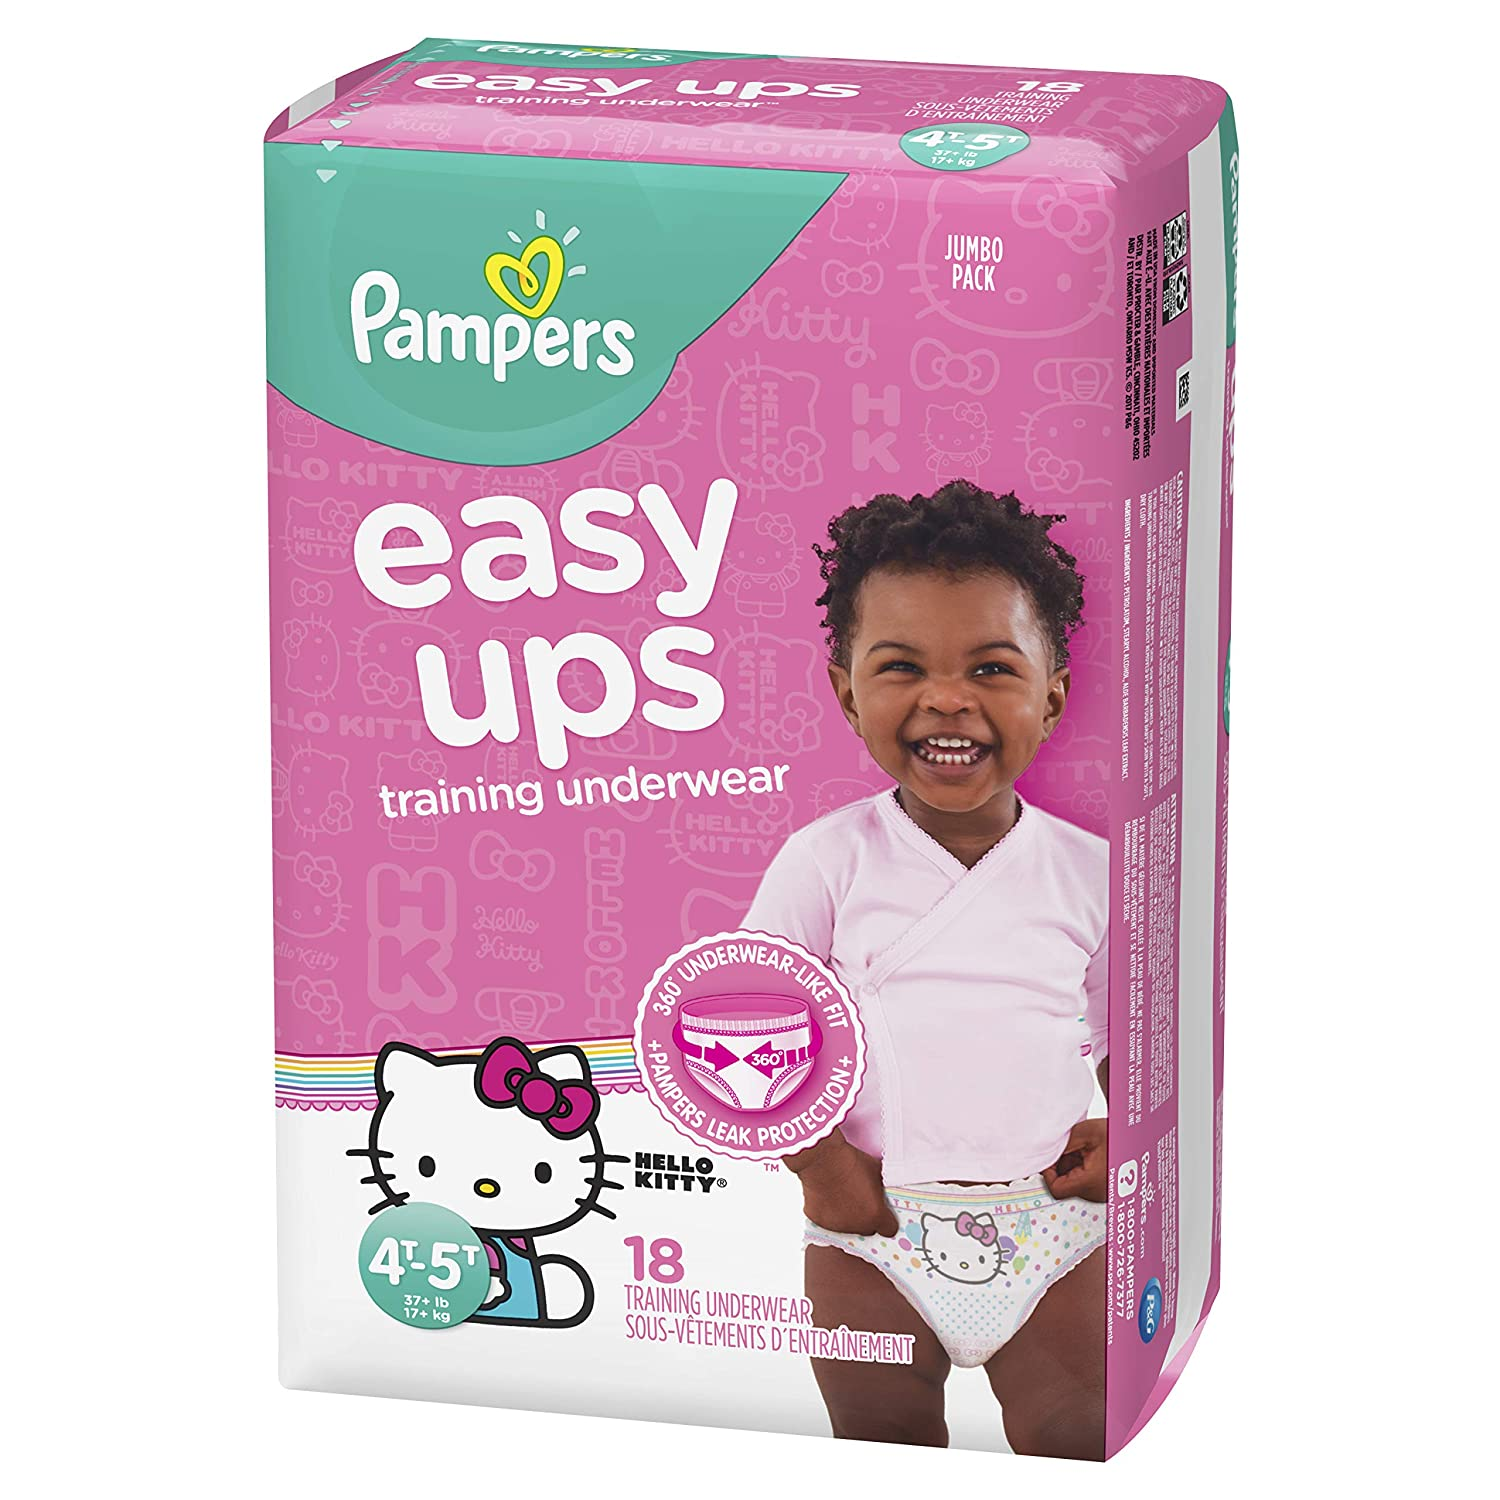 Pampers Easy Ups Pull On Disposable Training Diaper for Girls Size 6 (4T-5T), Super Pack, 56 Count Procter and Gamble